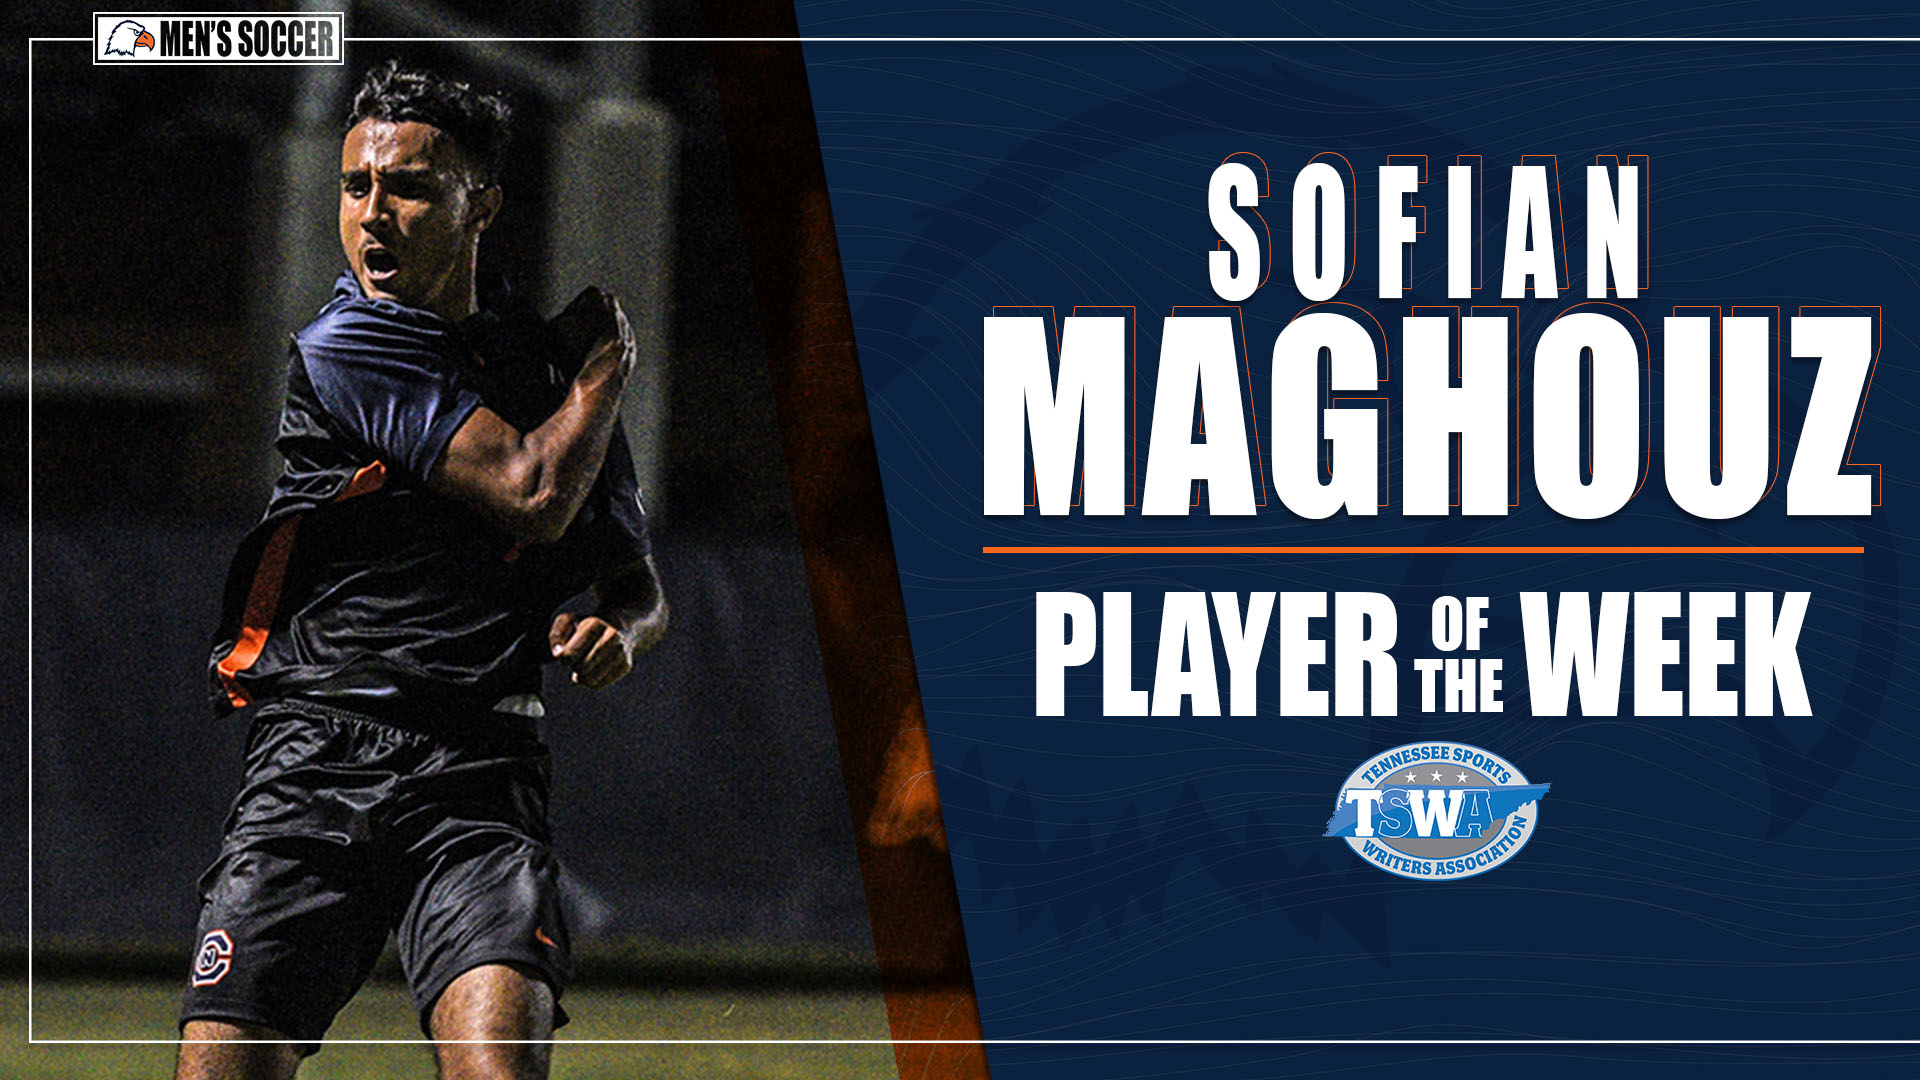 Maghouz honored with first TSWA Player of the Week accolade